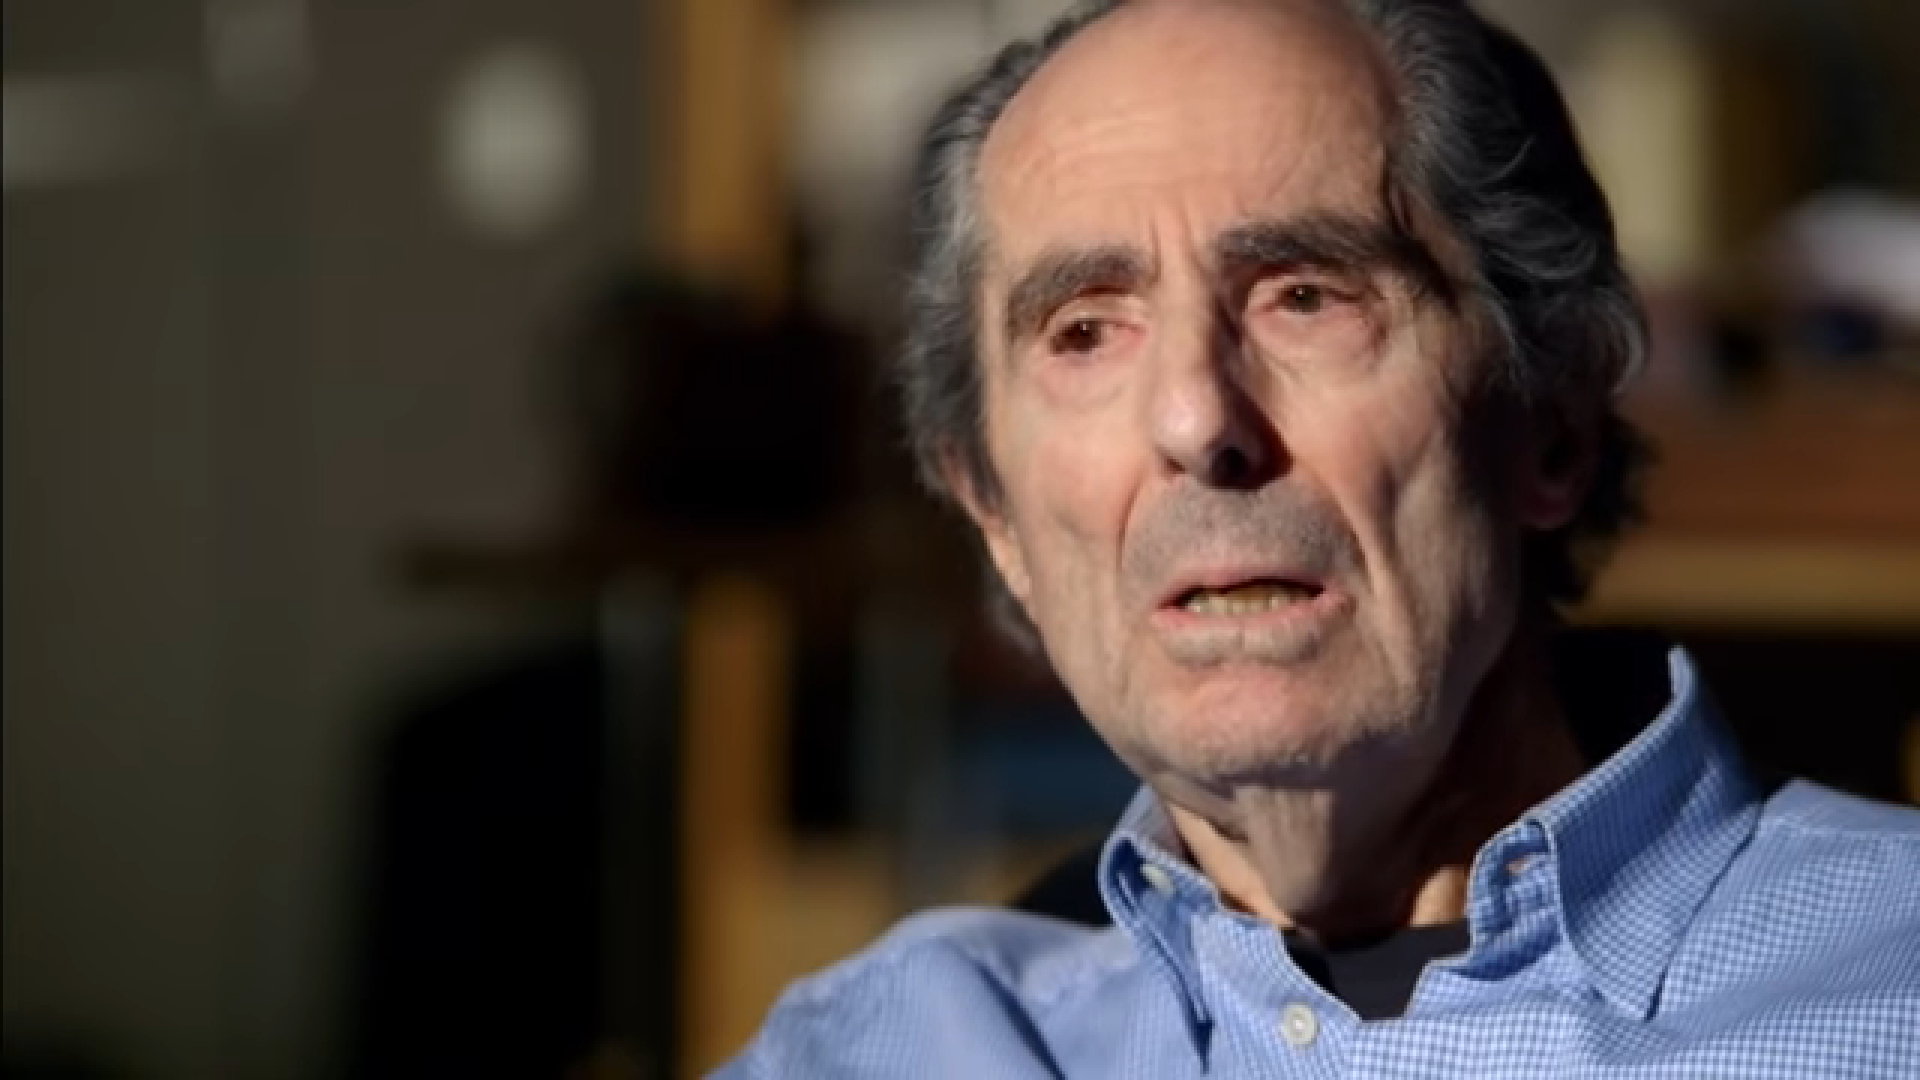 Legendary author Philip Roth dies